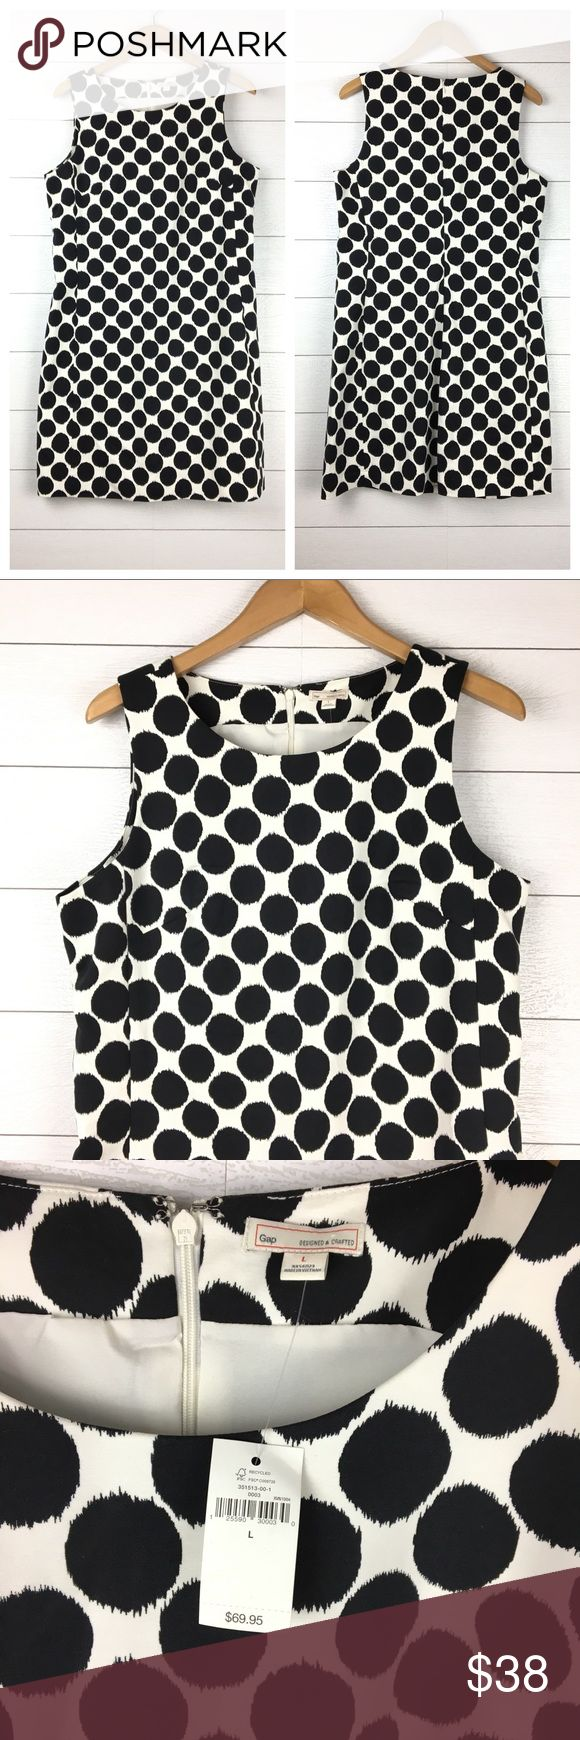 NWT GAP Polka Dot Brenda Career Dress 97% cotton, 3% spandex.  Lined.  GAP Brenda Printed Polka Dot Dress.  White dress with large black polka dots.  Zipper on back.  The perfect career dress.  Sheath style.  Sleeveless.  Brand new, with tag attached. GAP Dresses